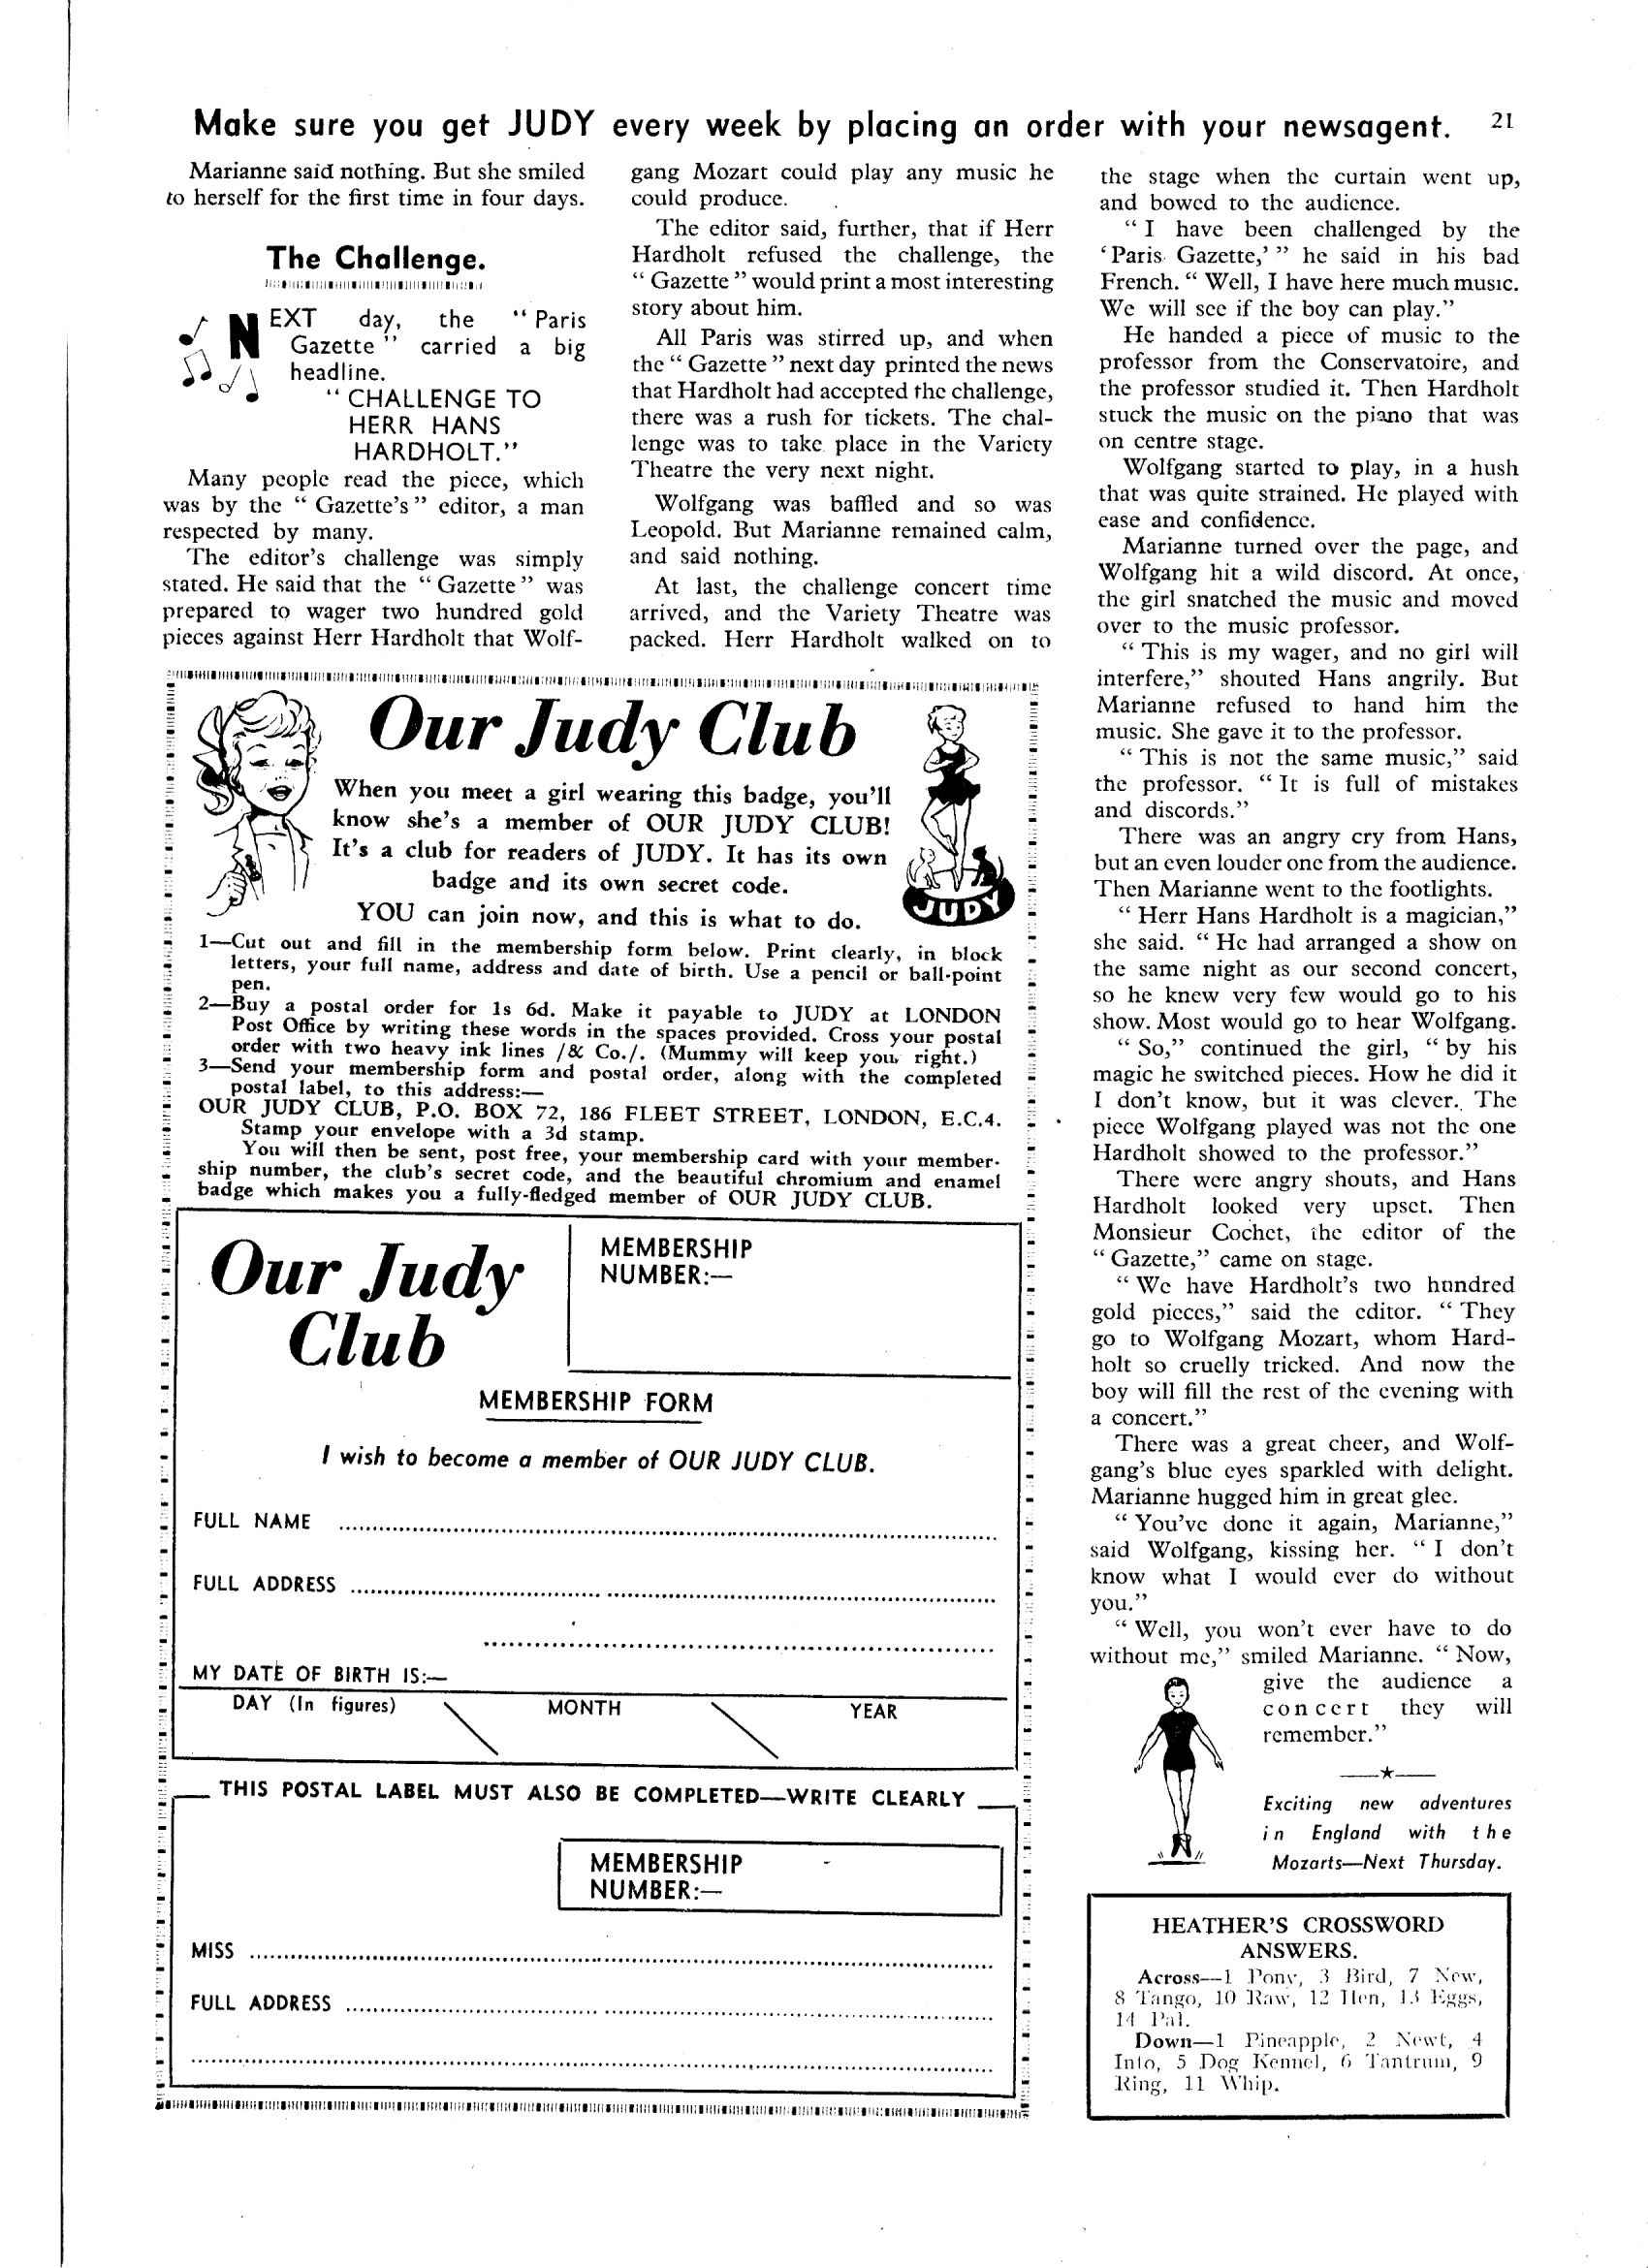 Read online Judy comic -  Issue #34 - 21